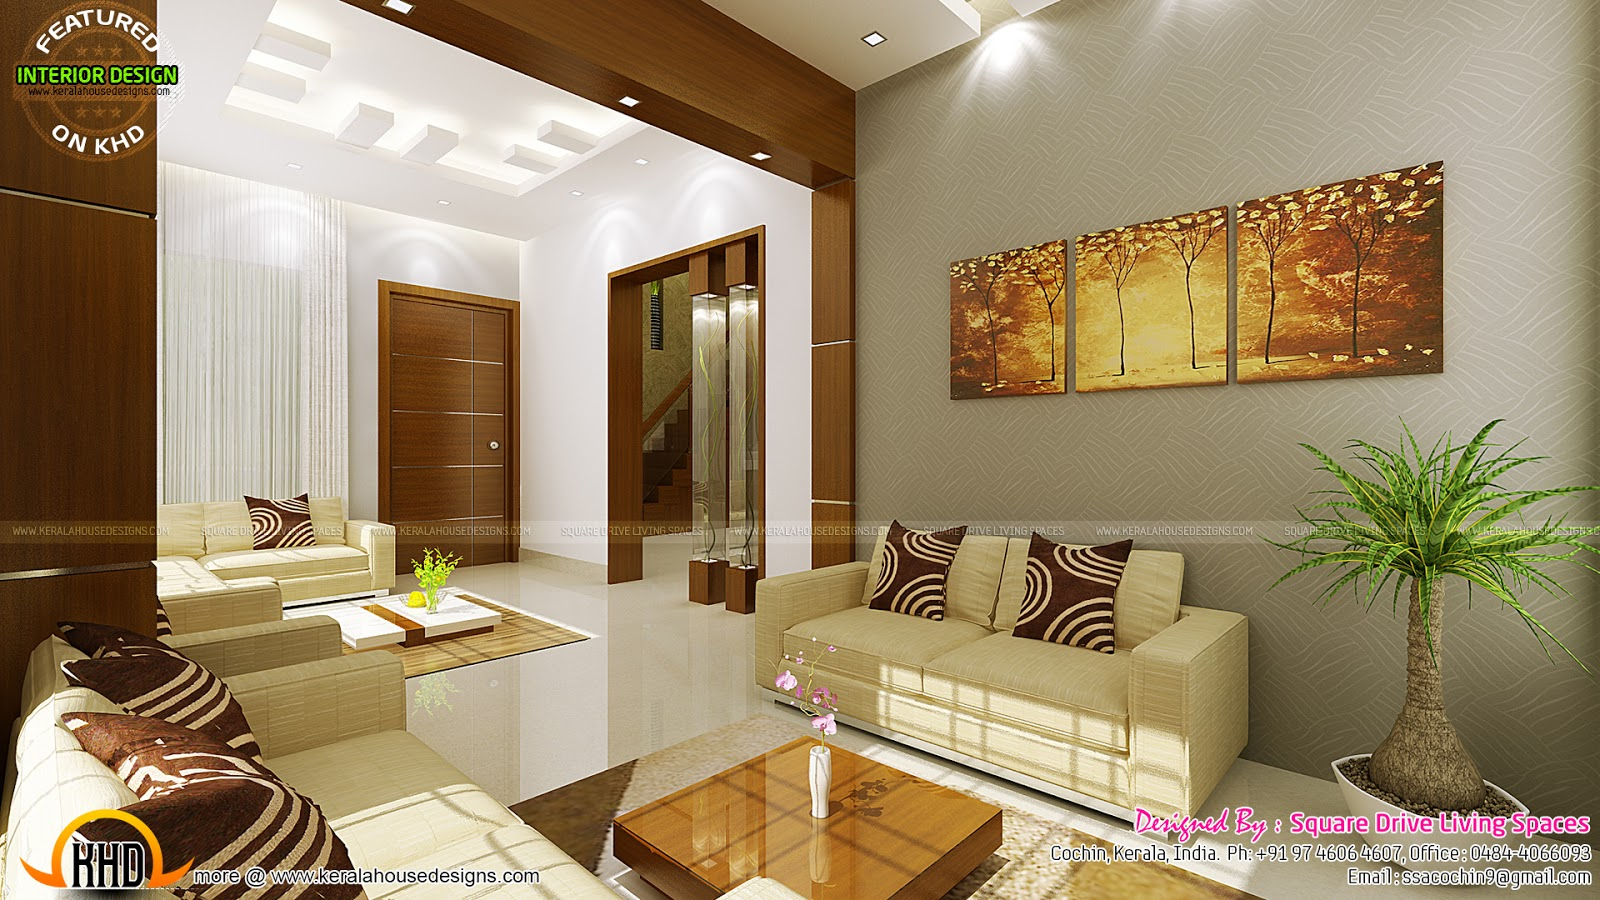 Contemporary kitchen dining and living room kerala home for Pictures of interior designs